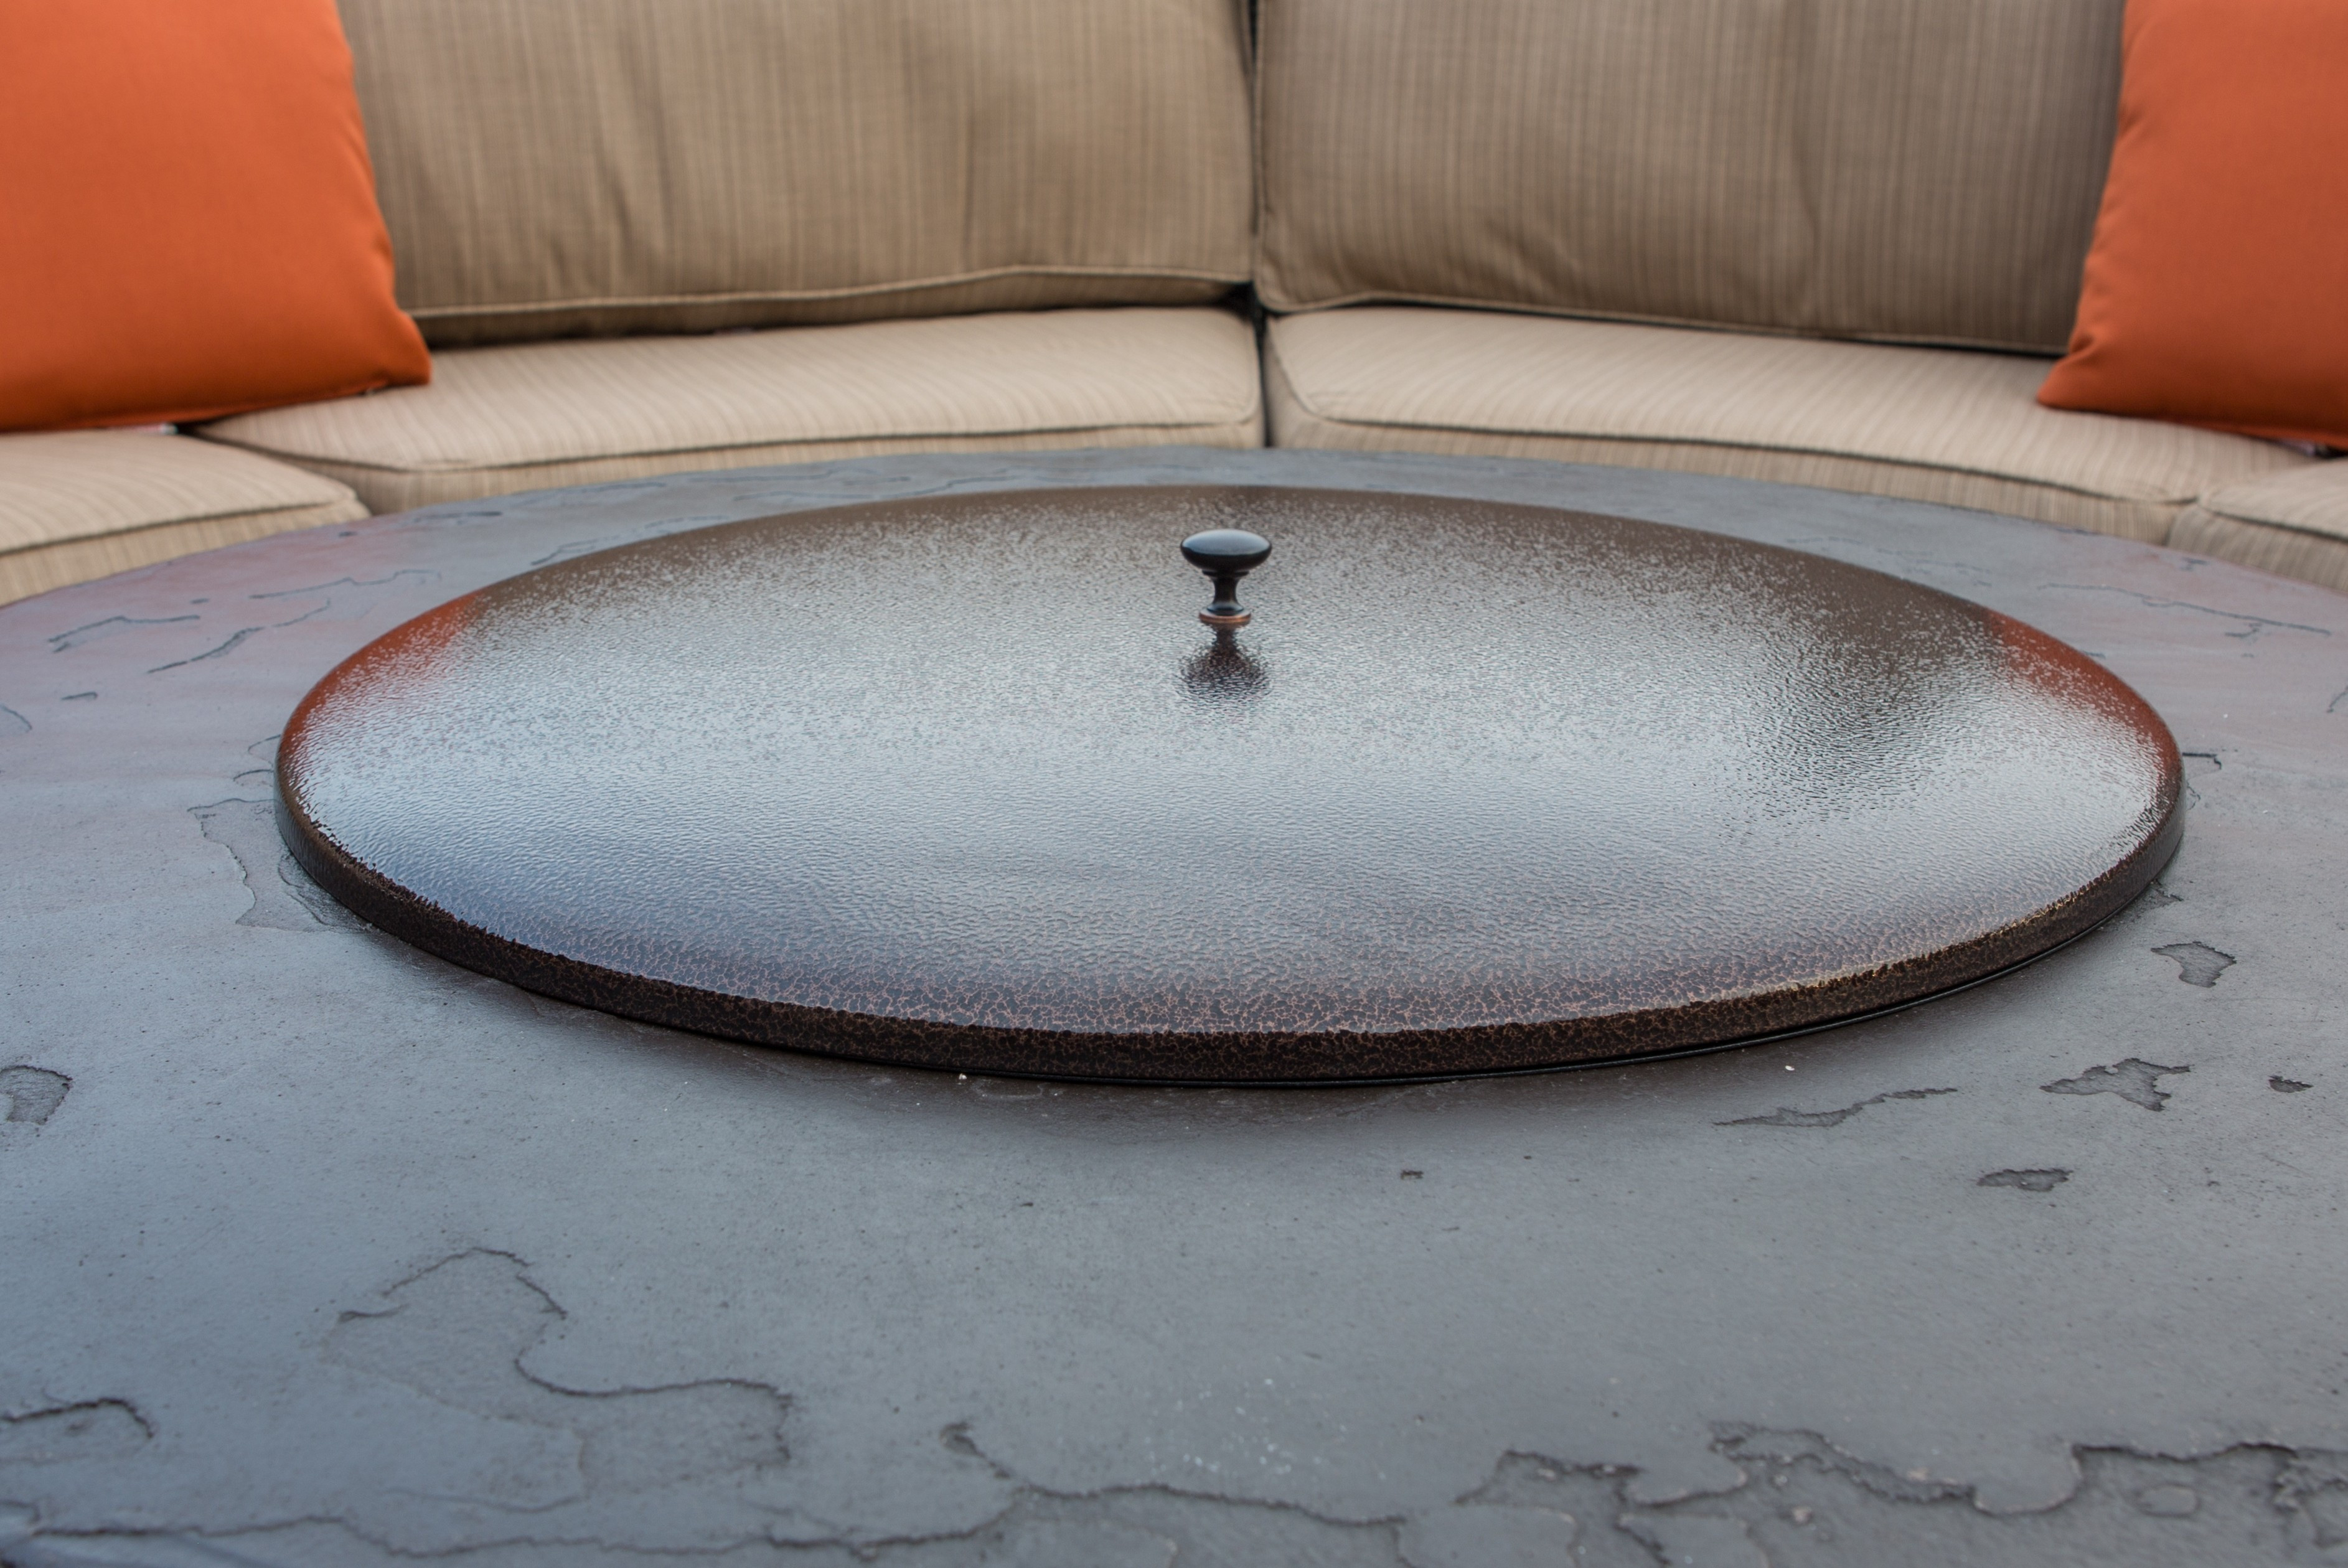 Best ideas about All Backyard Fun . Save or Pin Fire Pit With Lid Now.